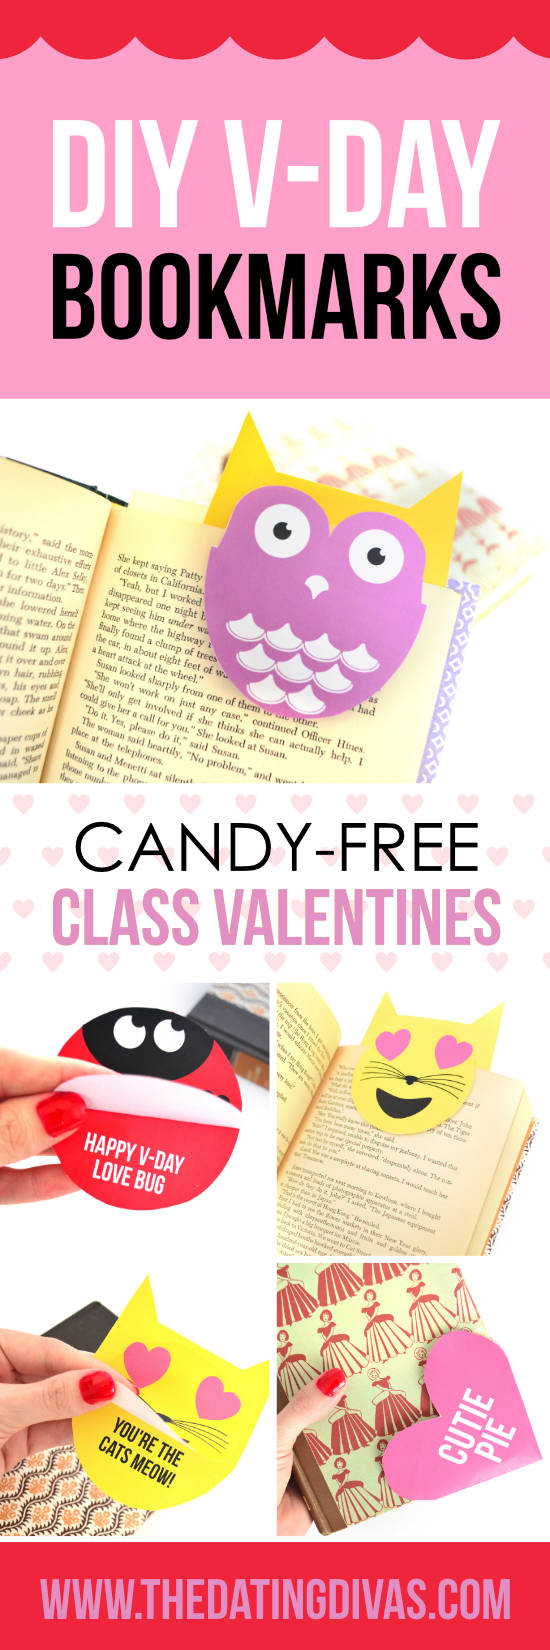 Candy Free V-Day Bookmarks. #VDay #ValentinesBookmarks